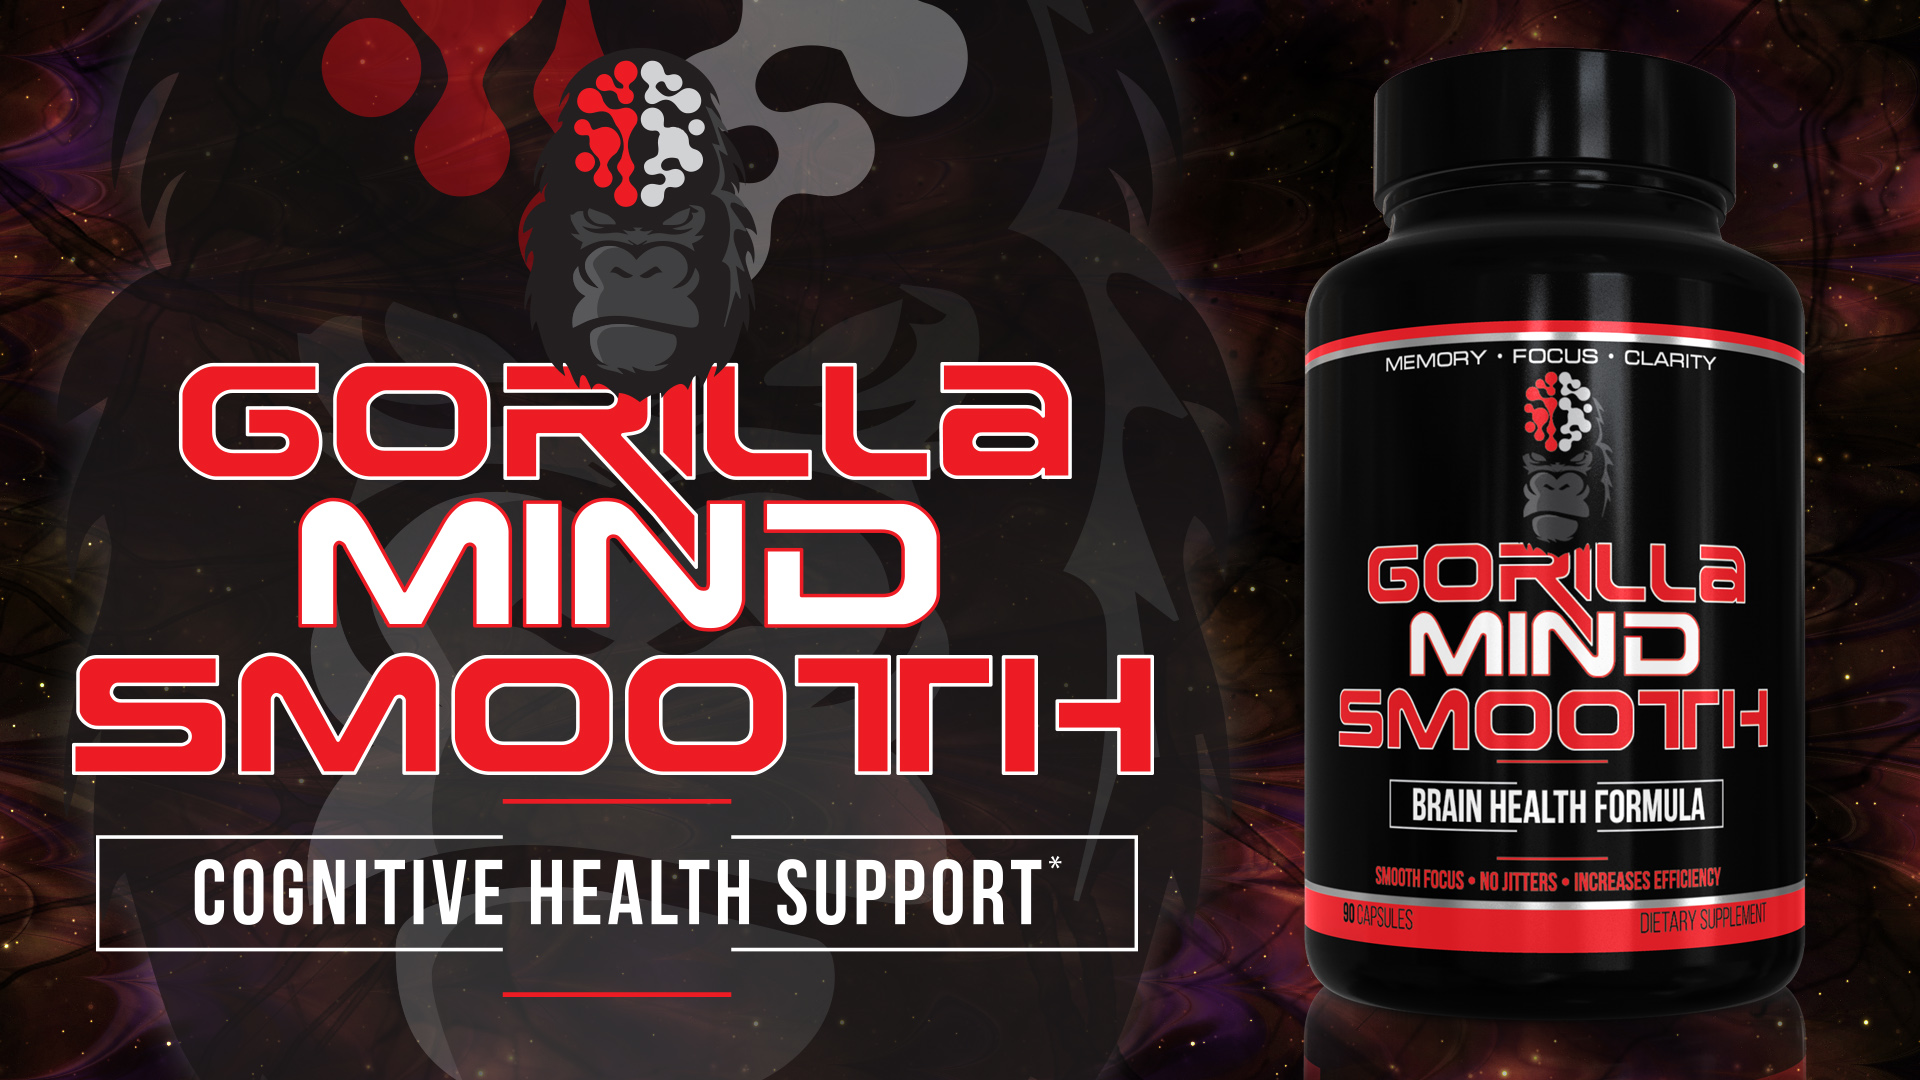 Gorilla Mind Smooth label and bottle